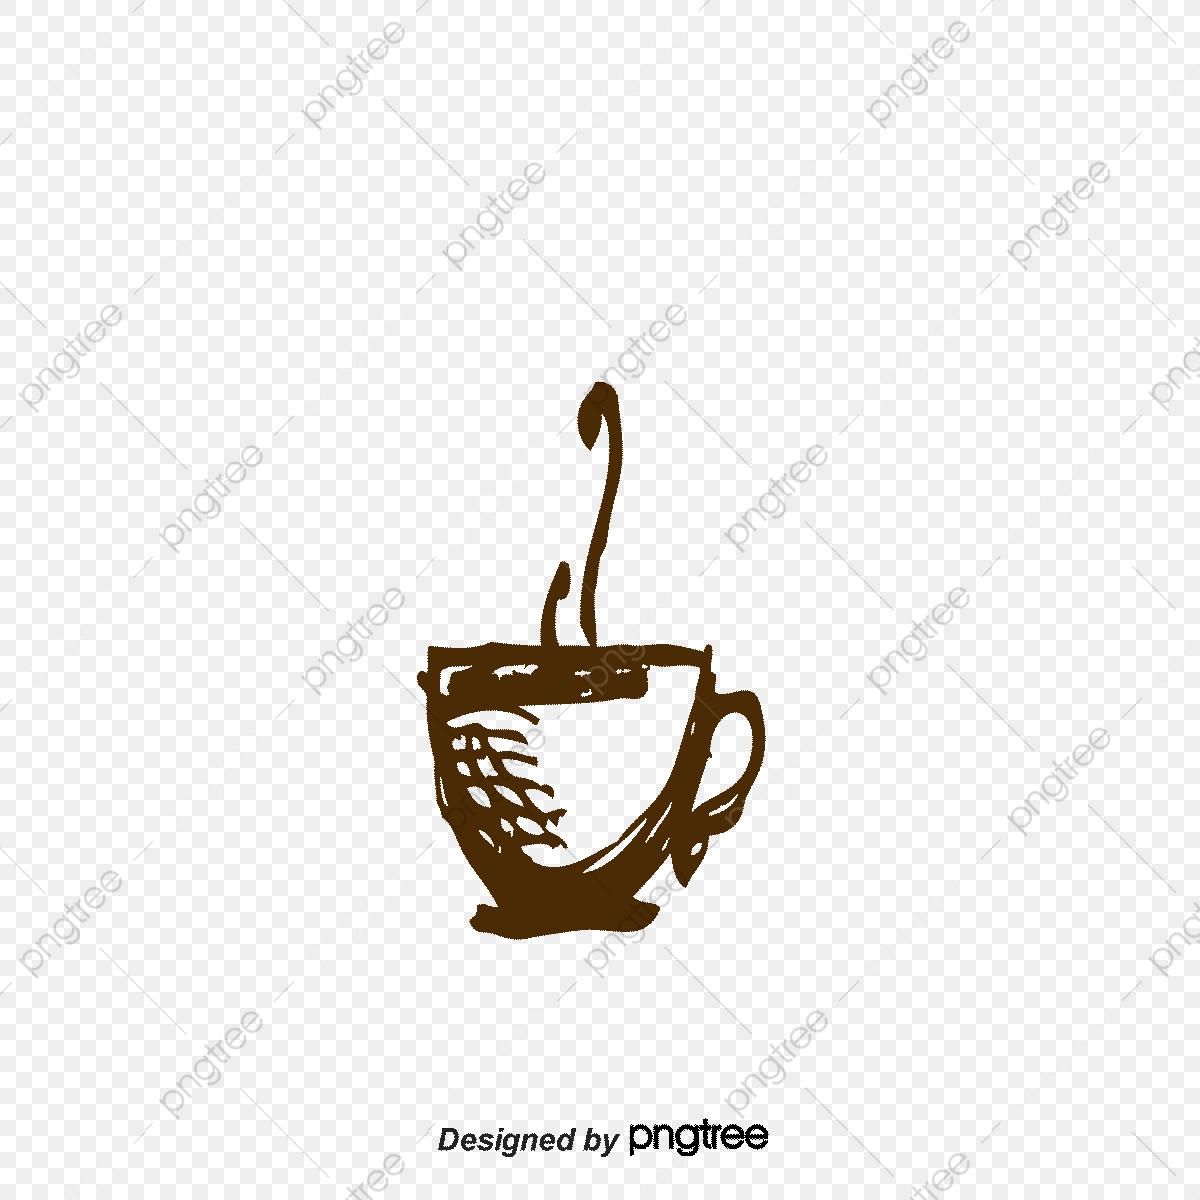 jpg royalty free stock Vector coffee abstract. Cup mug png